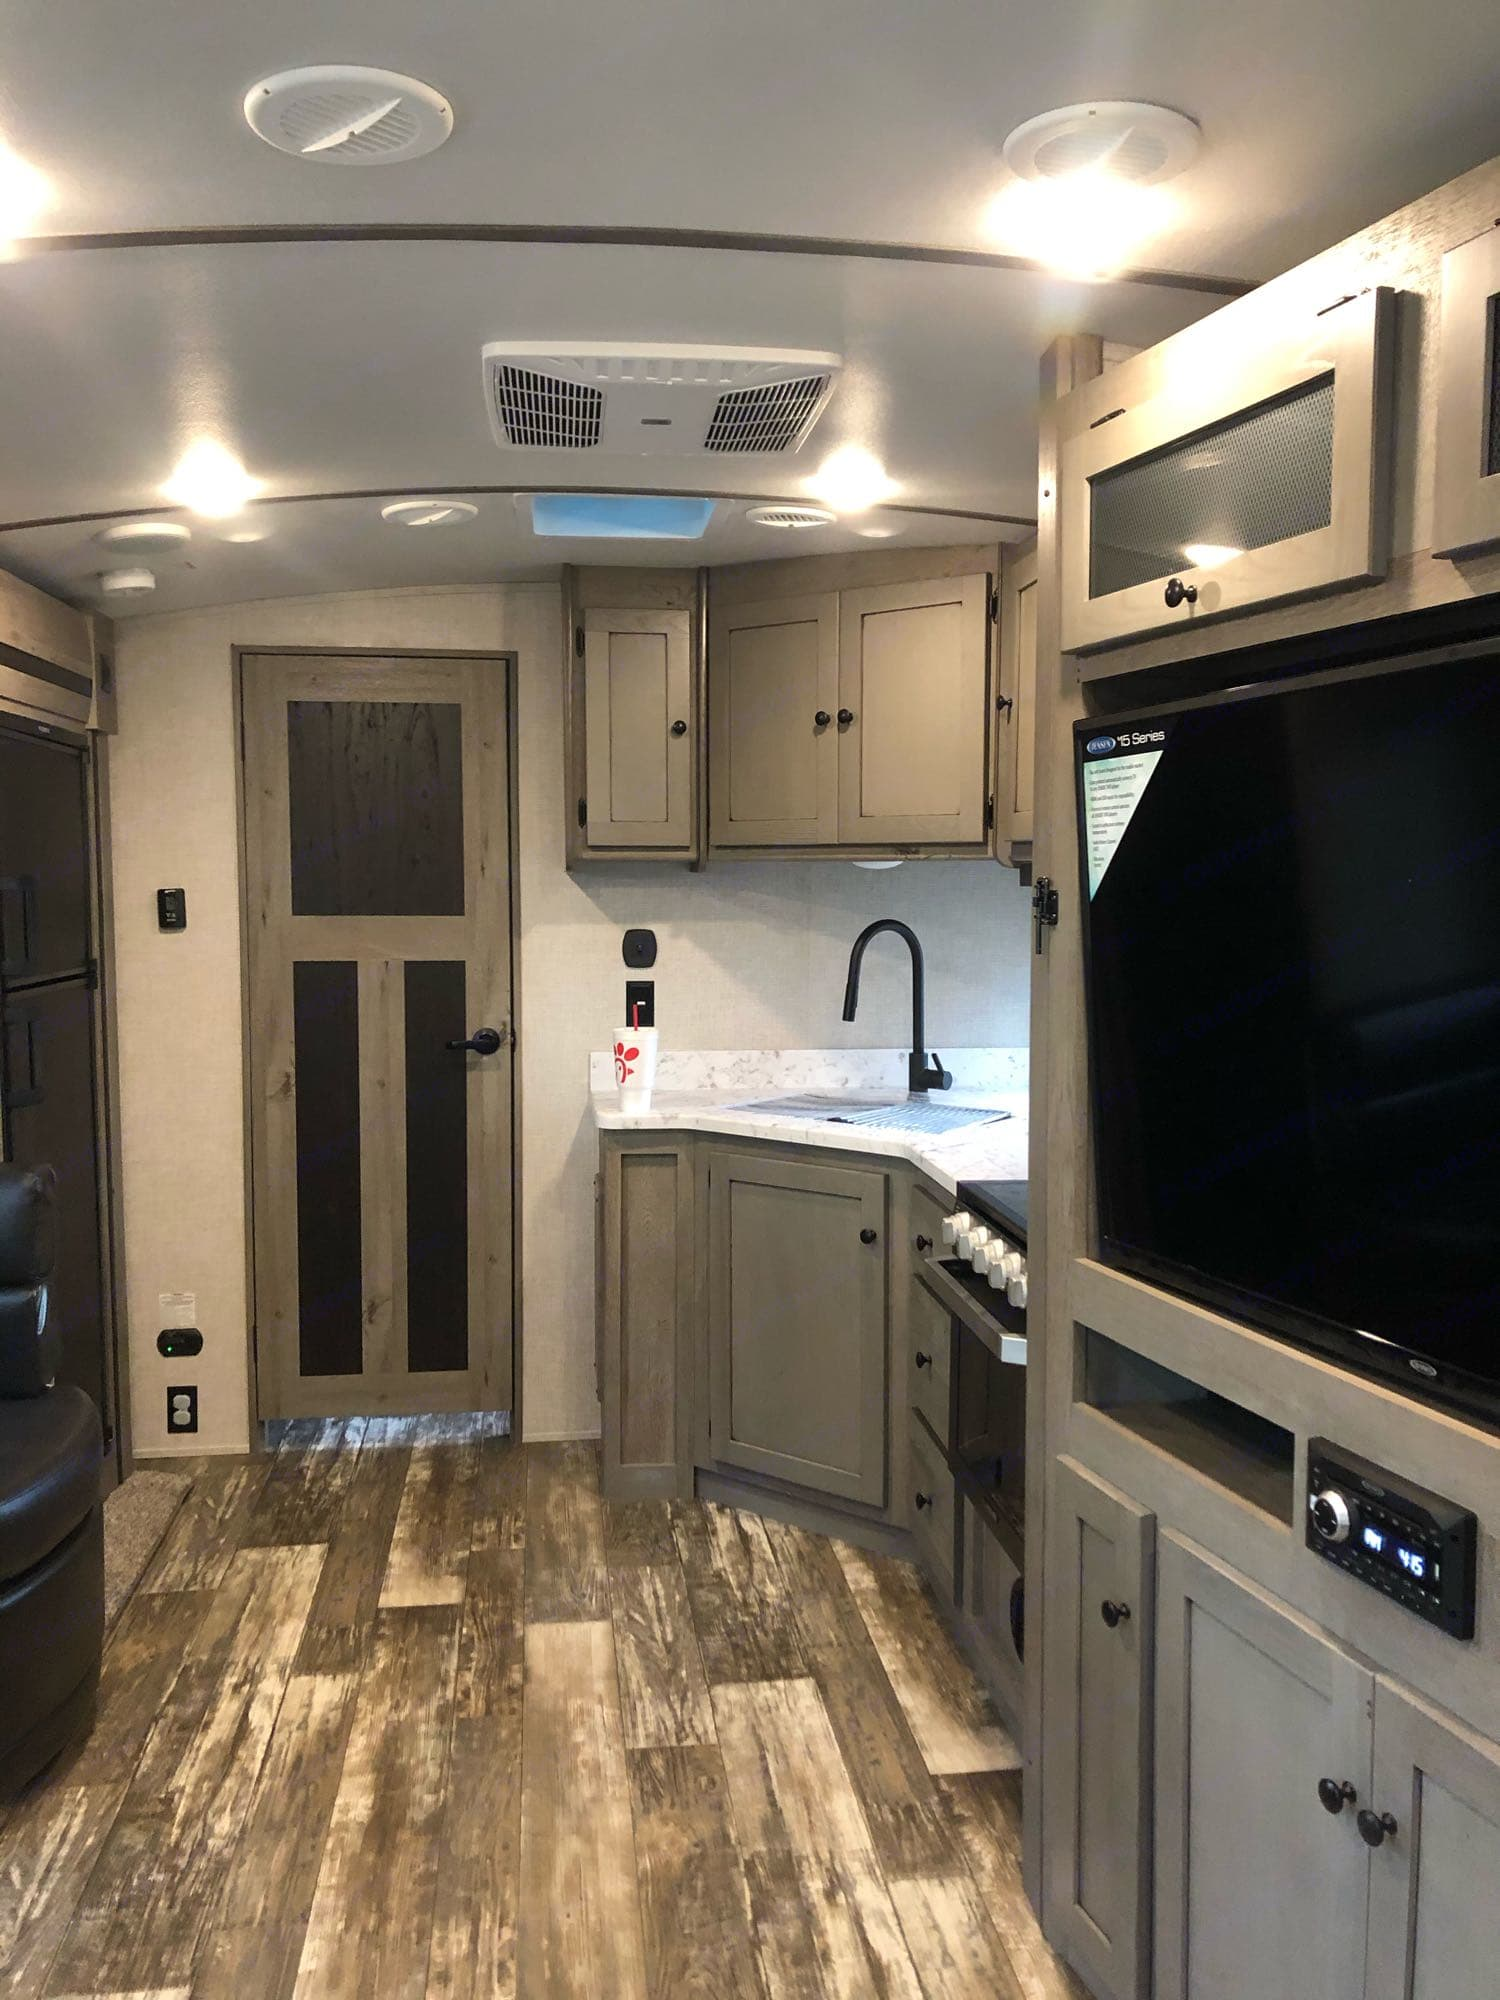 Great kitchen with all utensil pots and pan servings for four.. Keystone Outback 2020